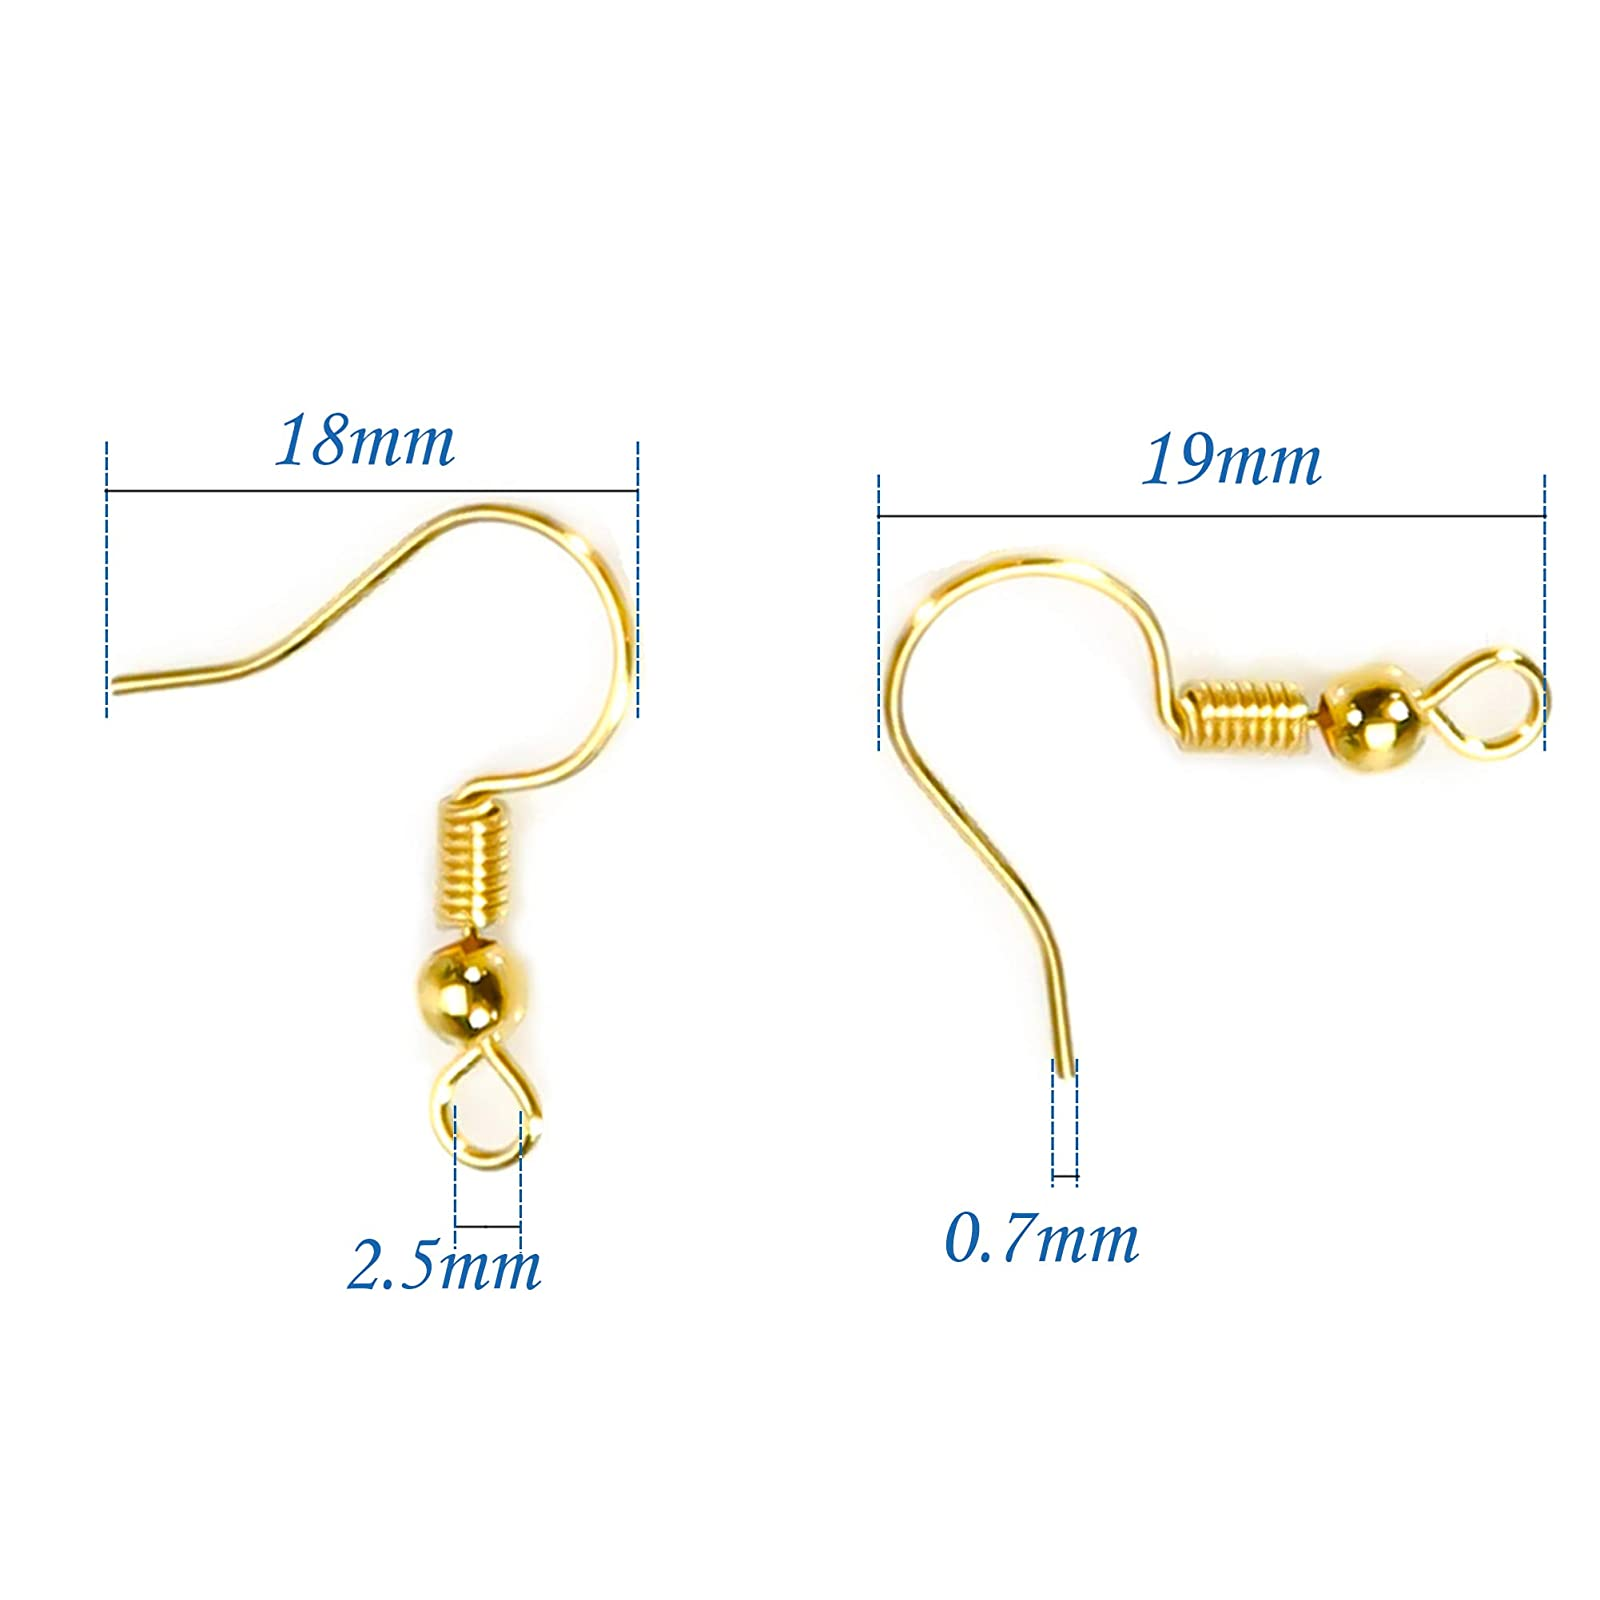 TOAOB 100pcs Earring Hooks Hypo Allergenic French Ear Wires with Ball and Coil 18mm K-Gold Tone Fish Hook Earrings Making Supplies Jewelry Findings